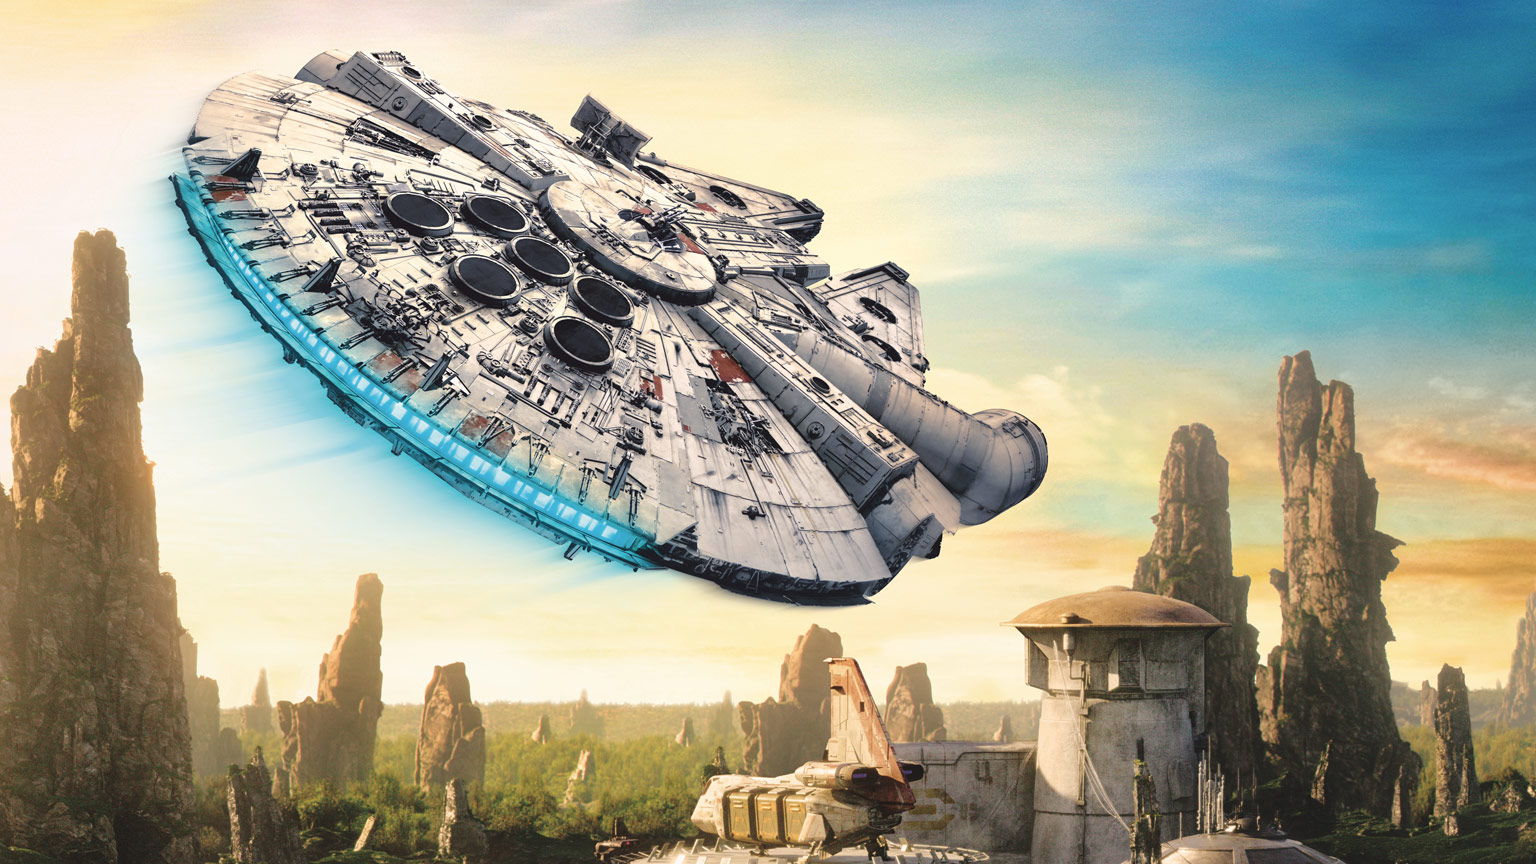 The Millennium Falcon flies over Batuu.